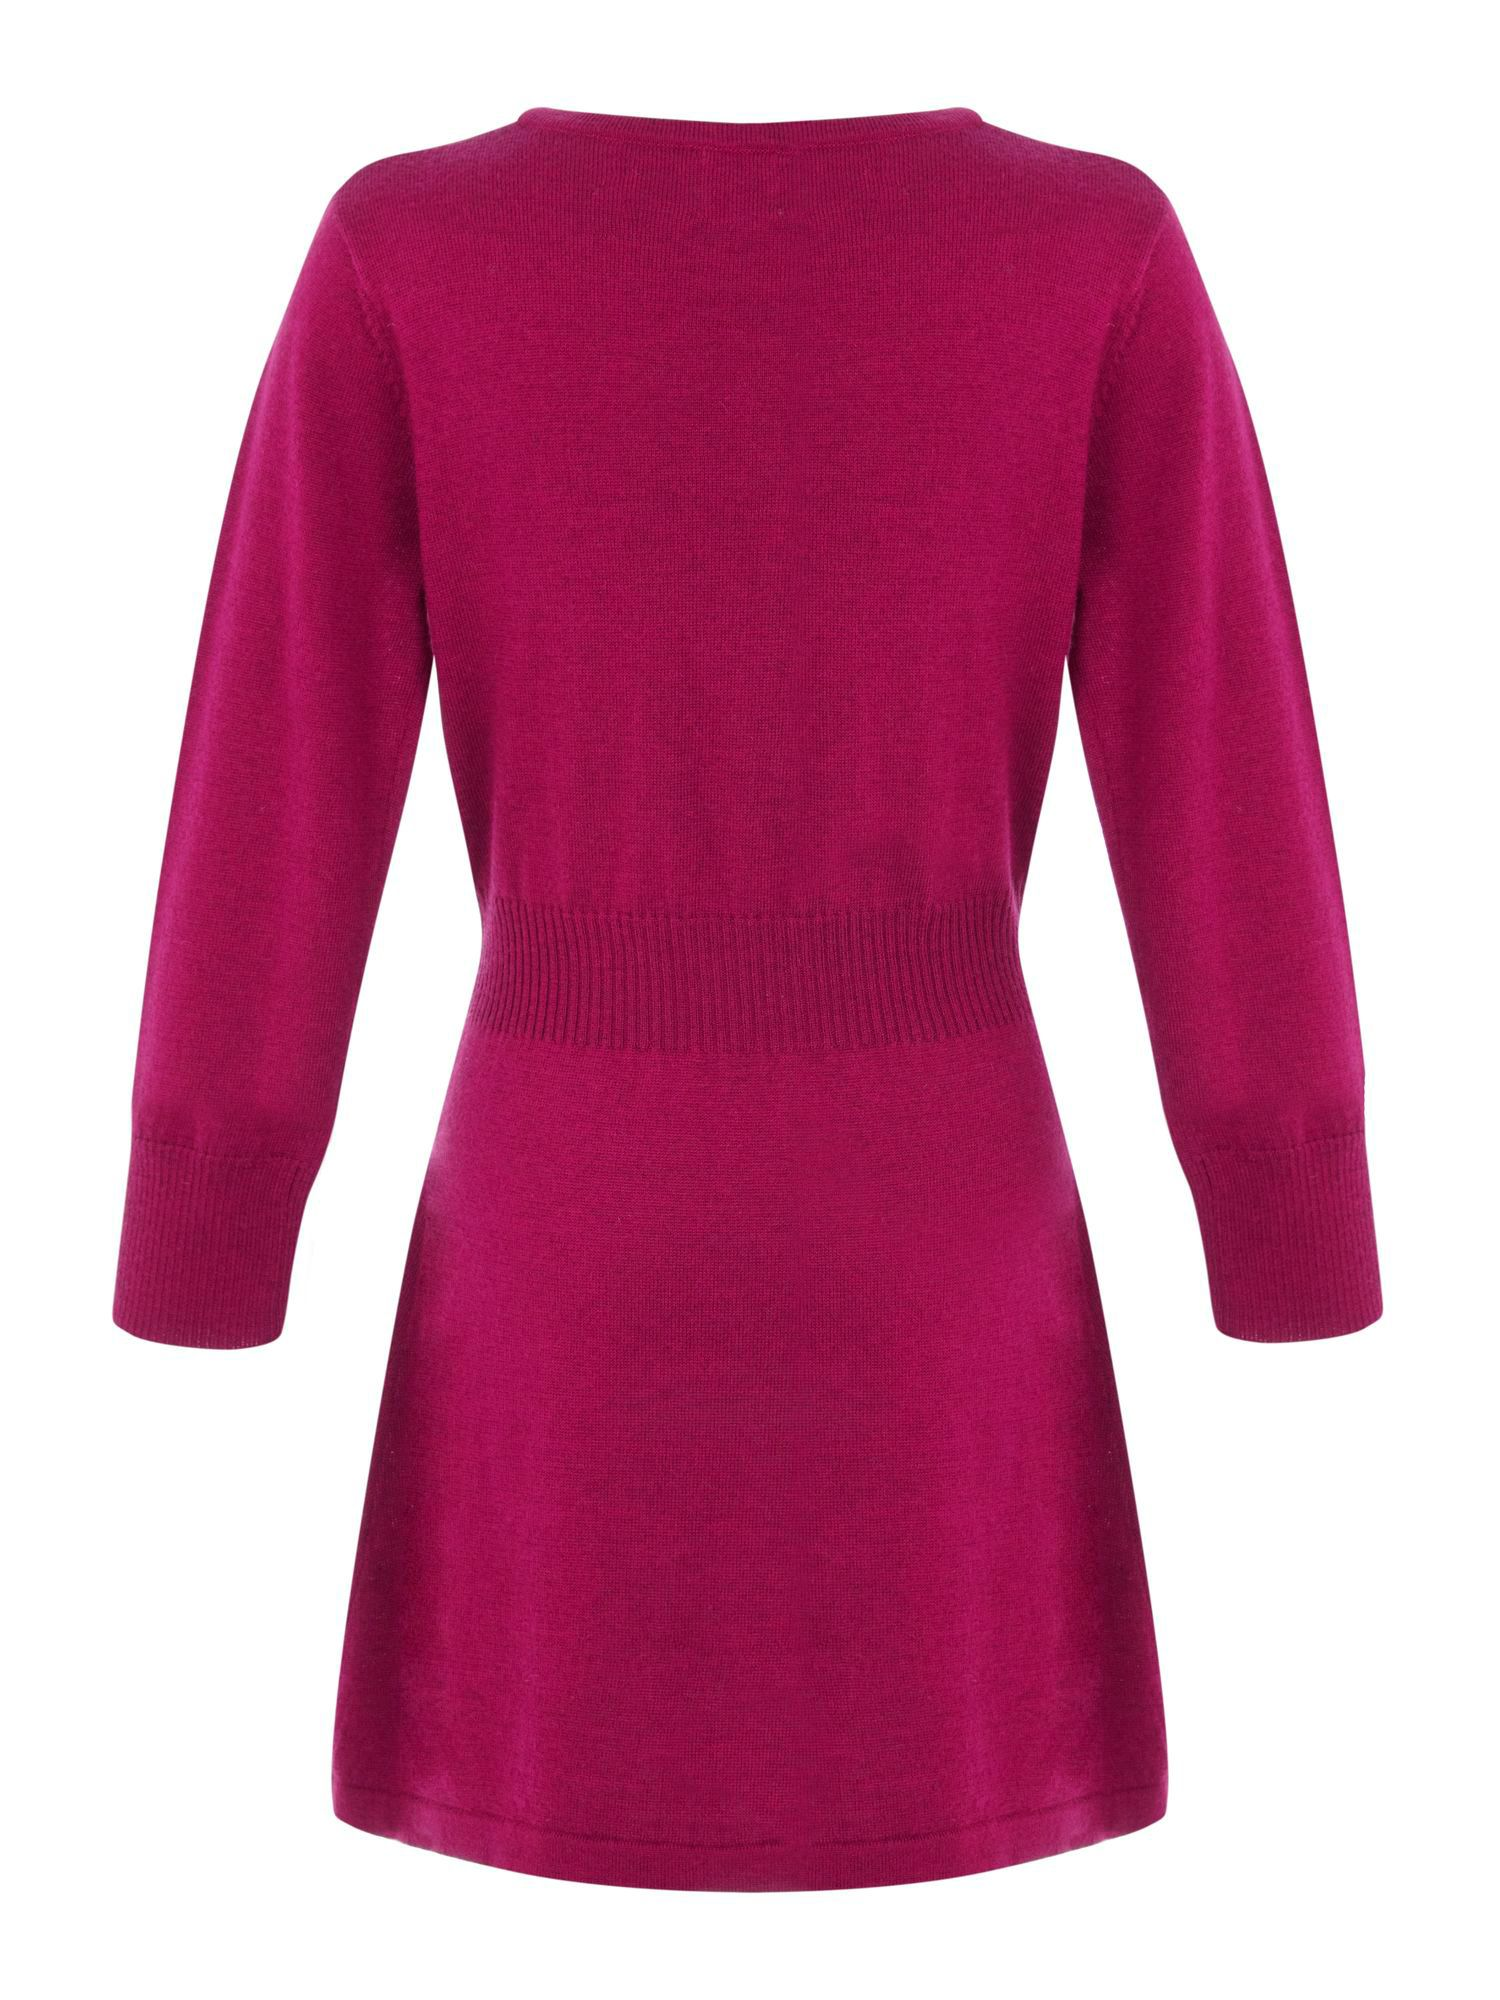 Girls heart jumper dress